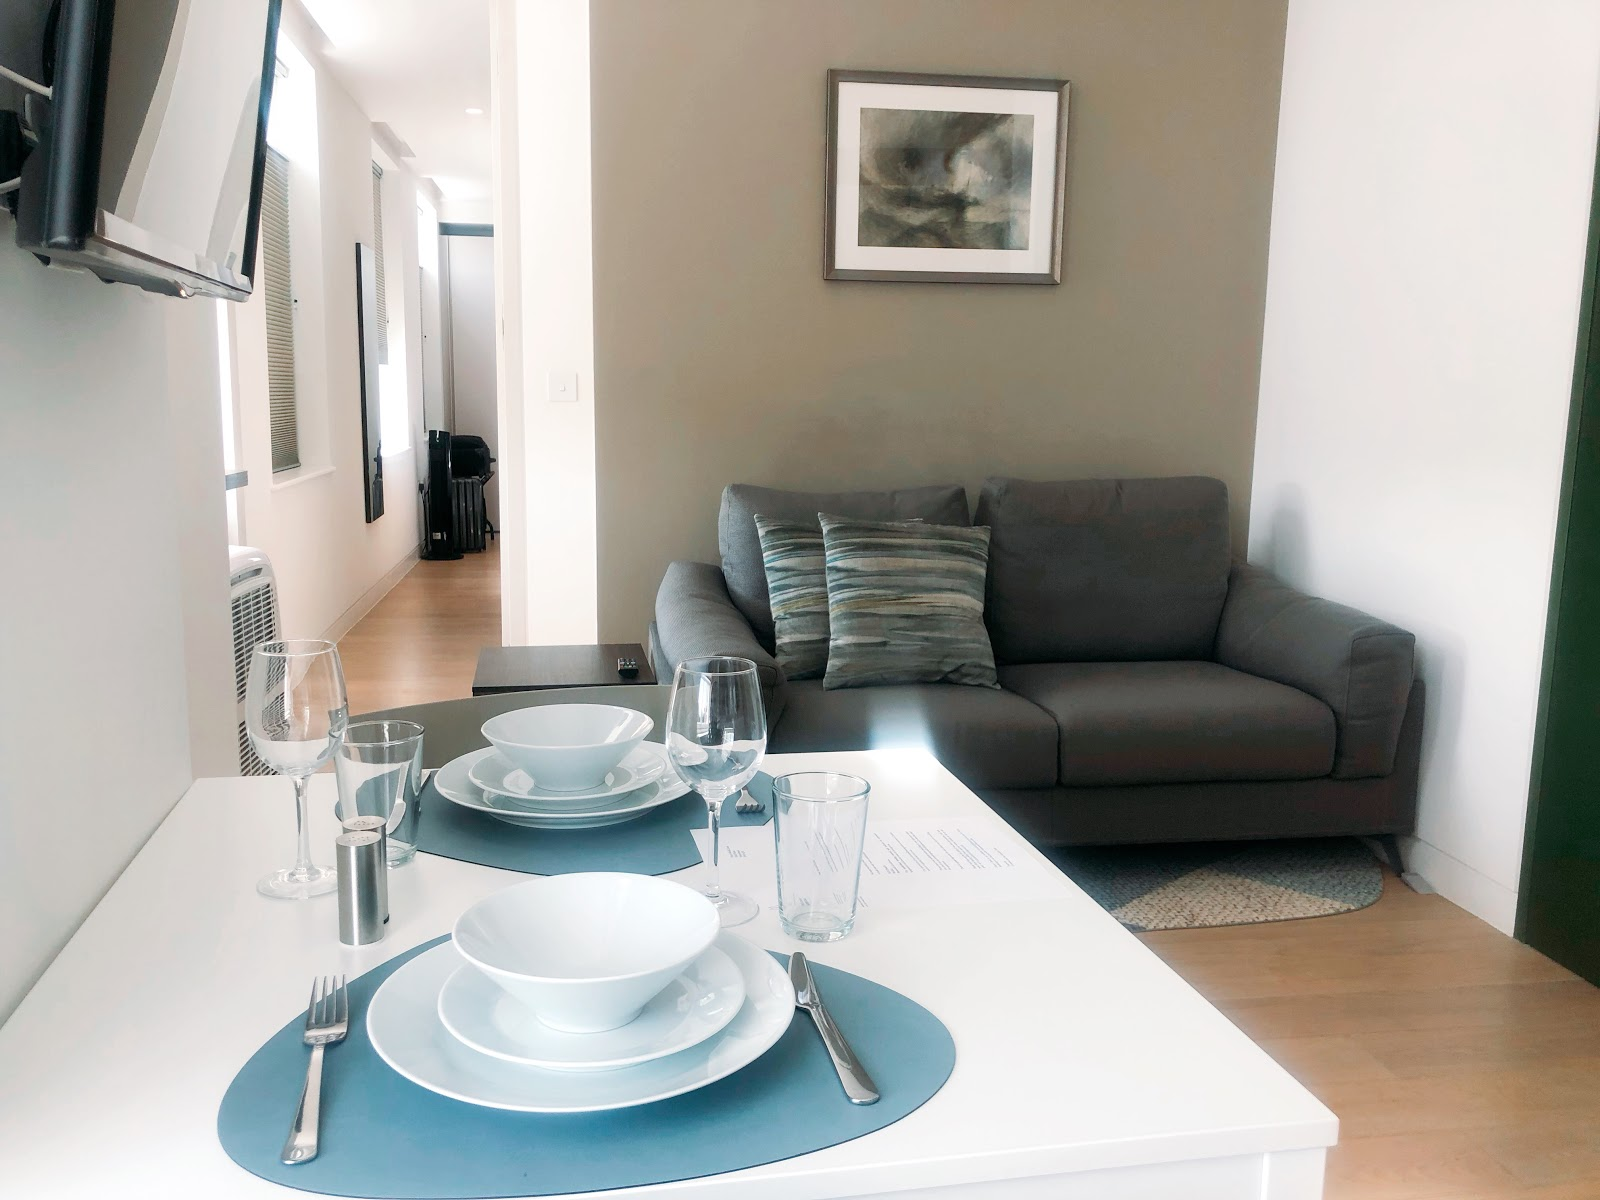 mirabilis apartments review, Mirabilis wells court hampstead, couples weekend in london